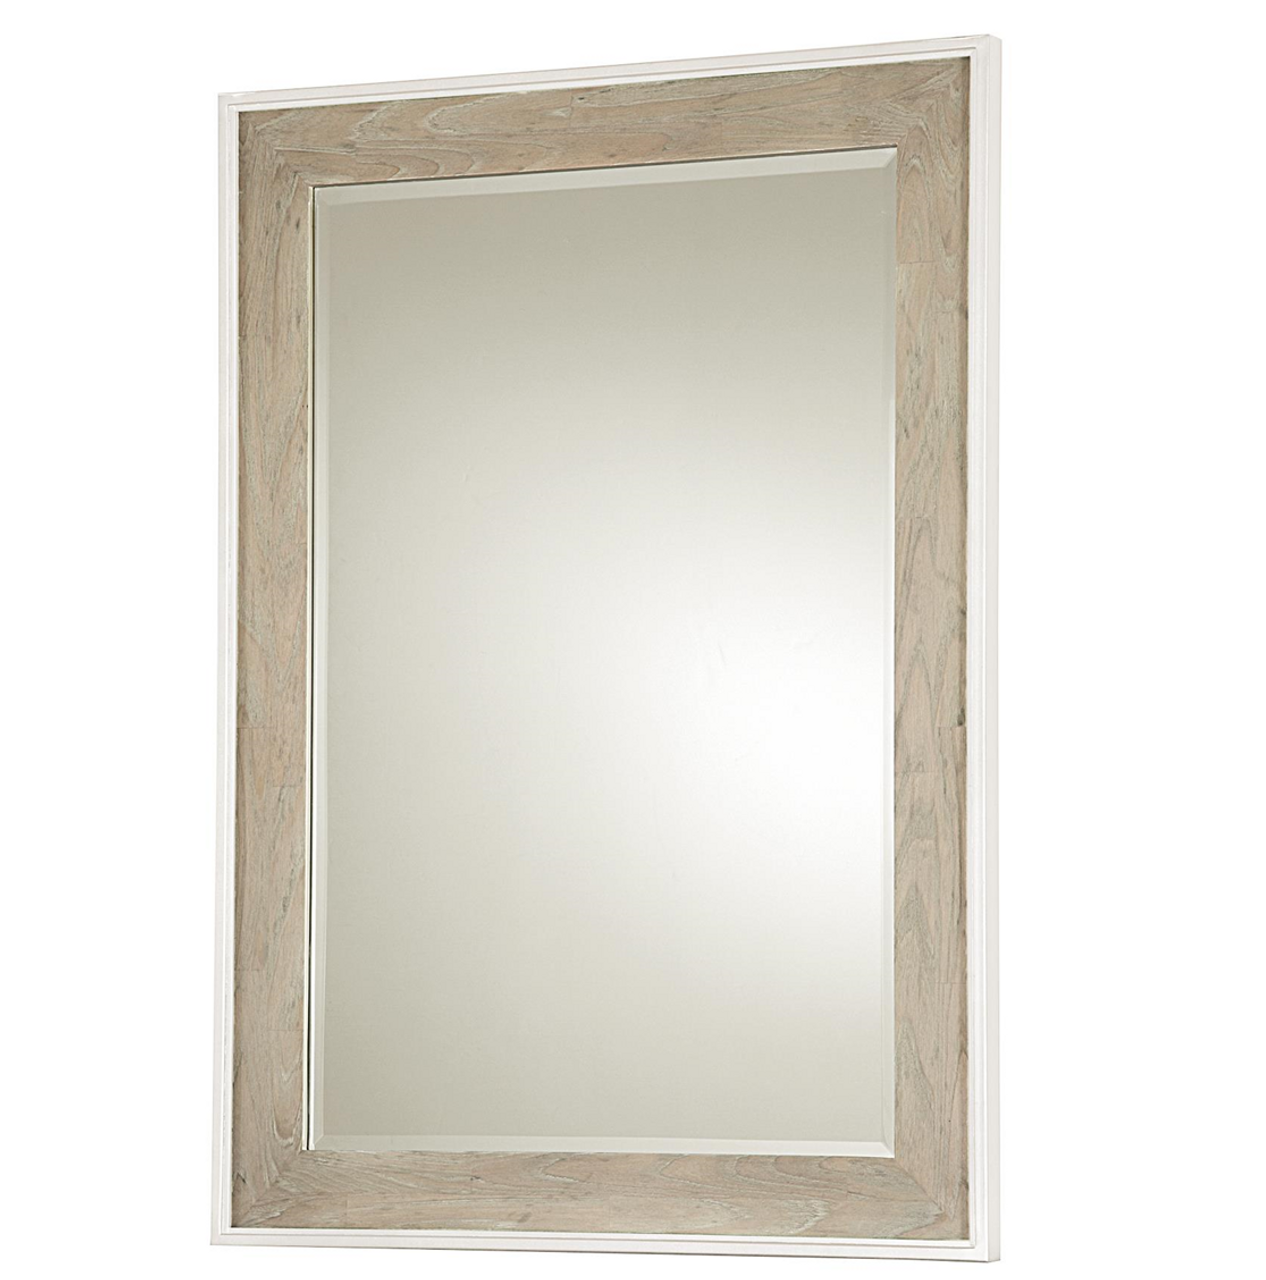 Modern Gray and White Bedroom Dresser Mirror